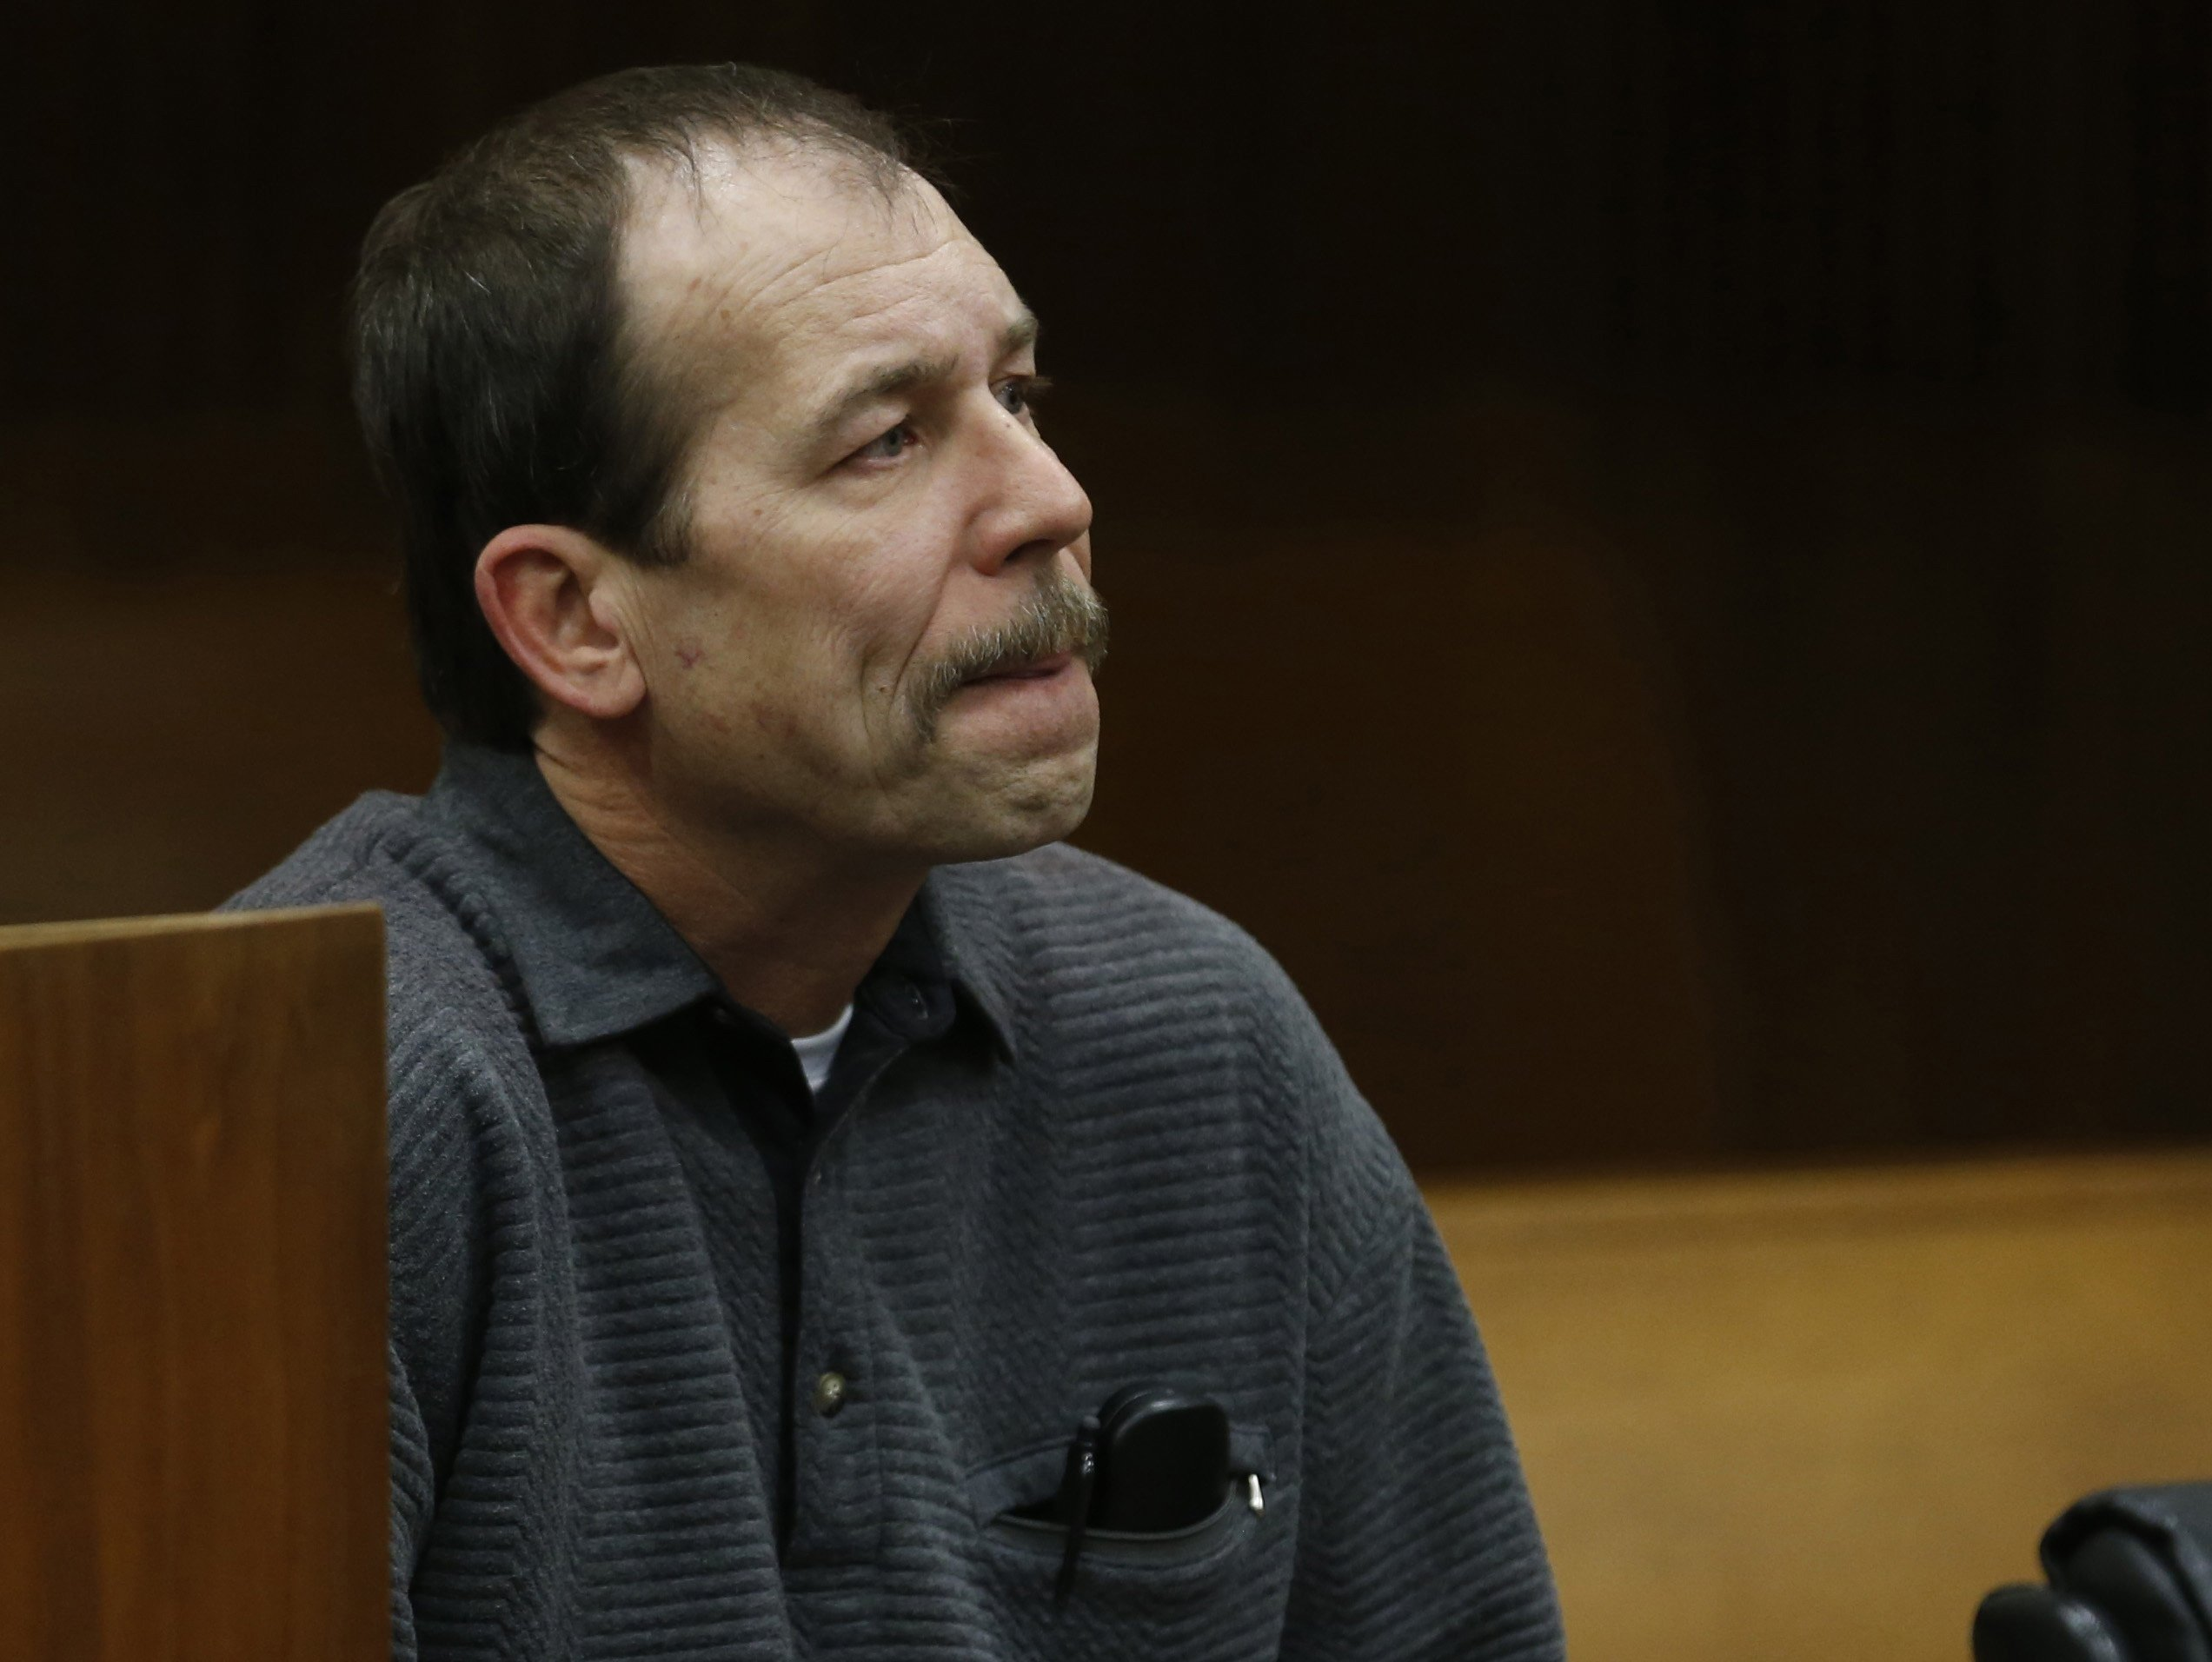 Theodore Wafer sits in the court room during his arraignment in Detroit, Michigan on January 15, 2014.